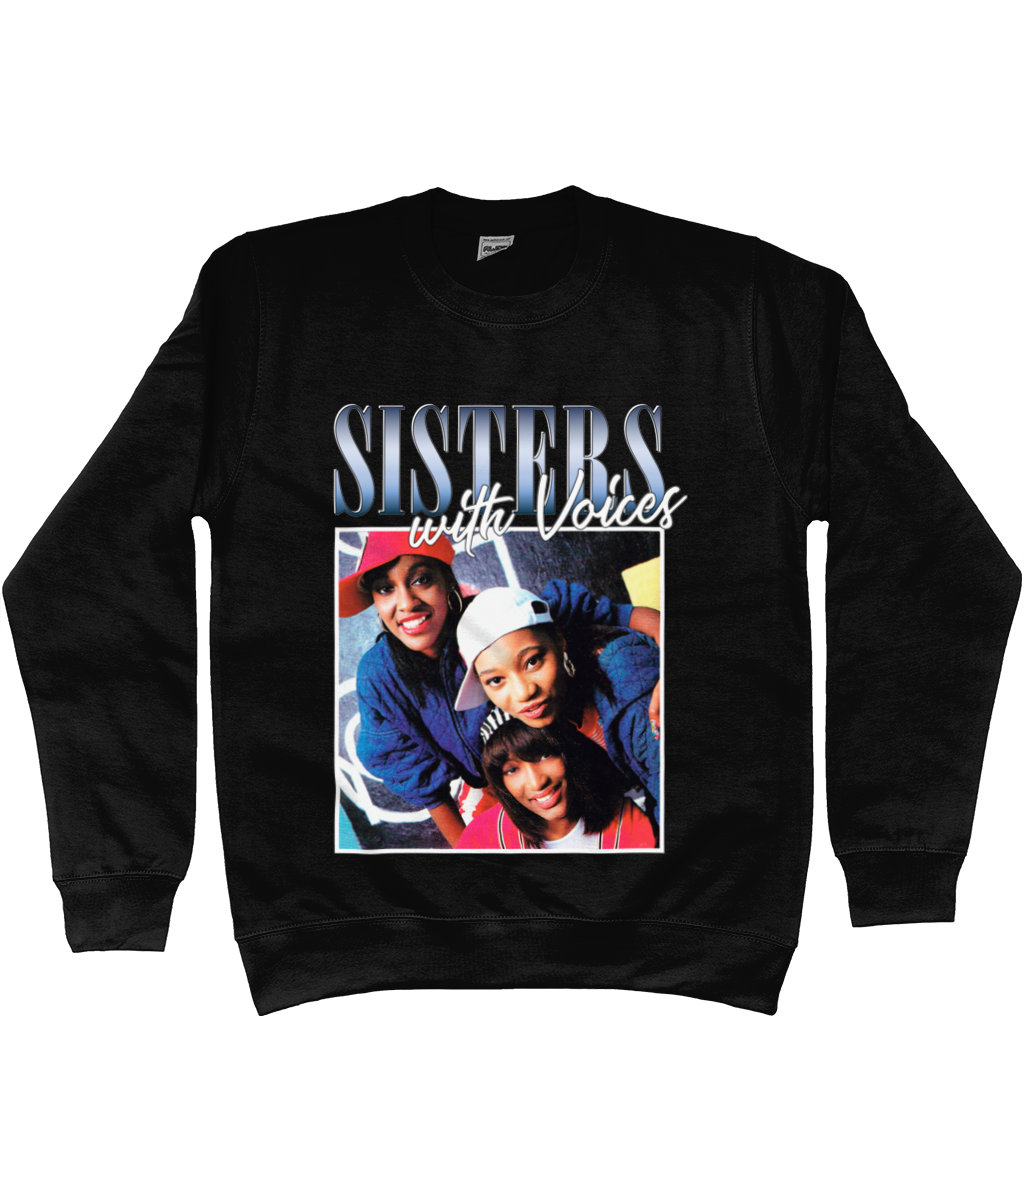 SWV Sisters with Voices Sweatshirt